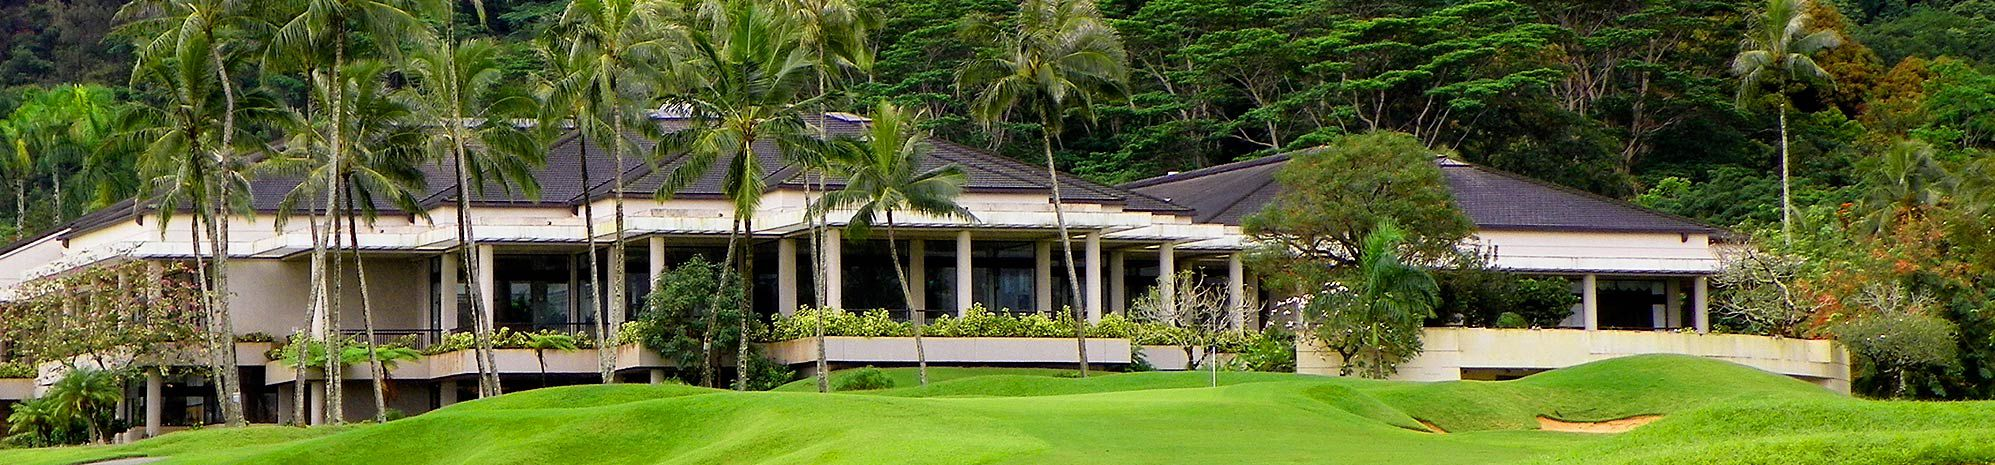 Ko olau golf club cover picture